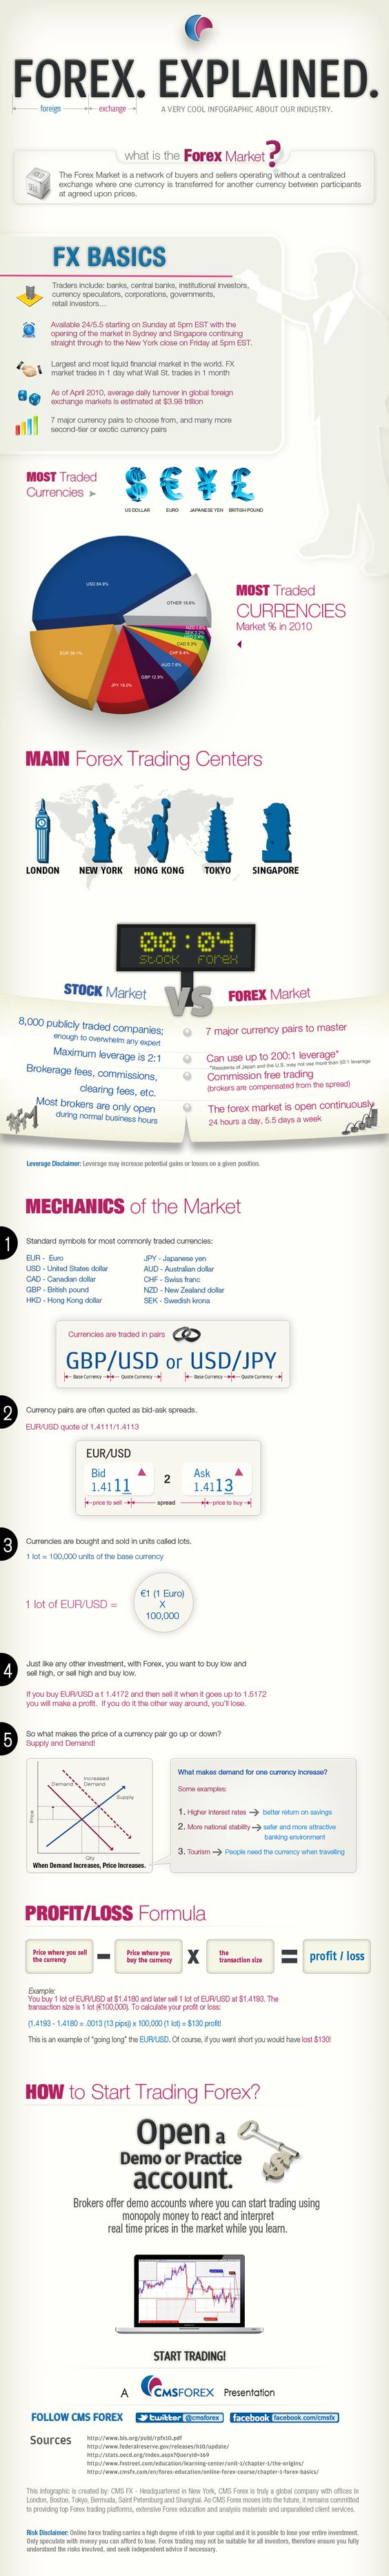 Foreign Exchange (forex) explained in an infographic!